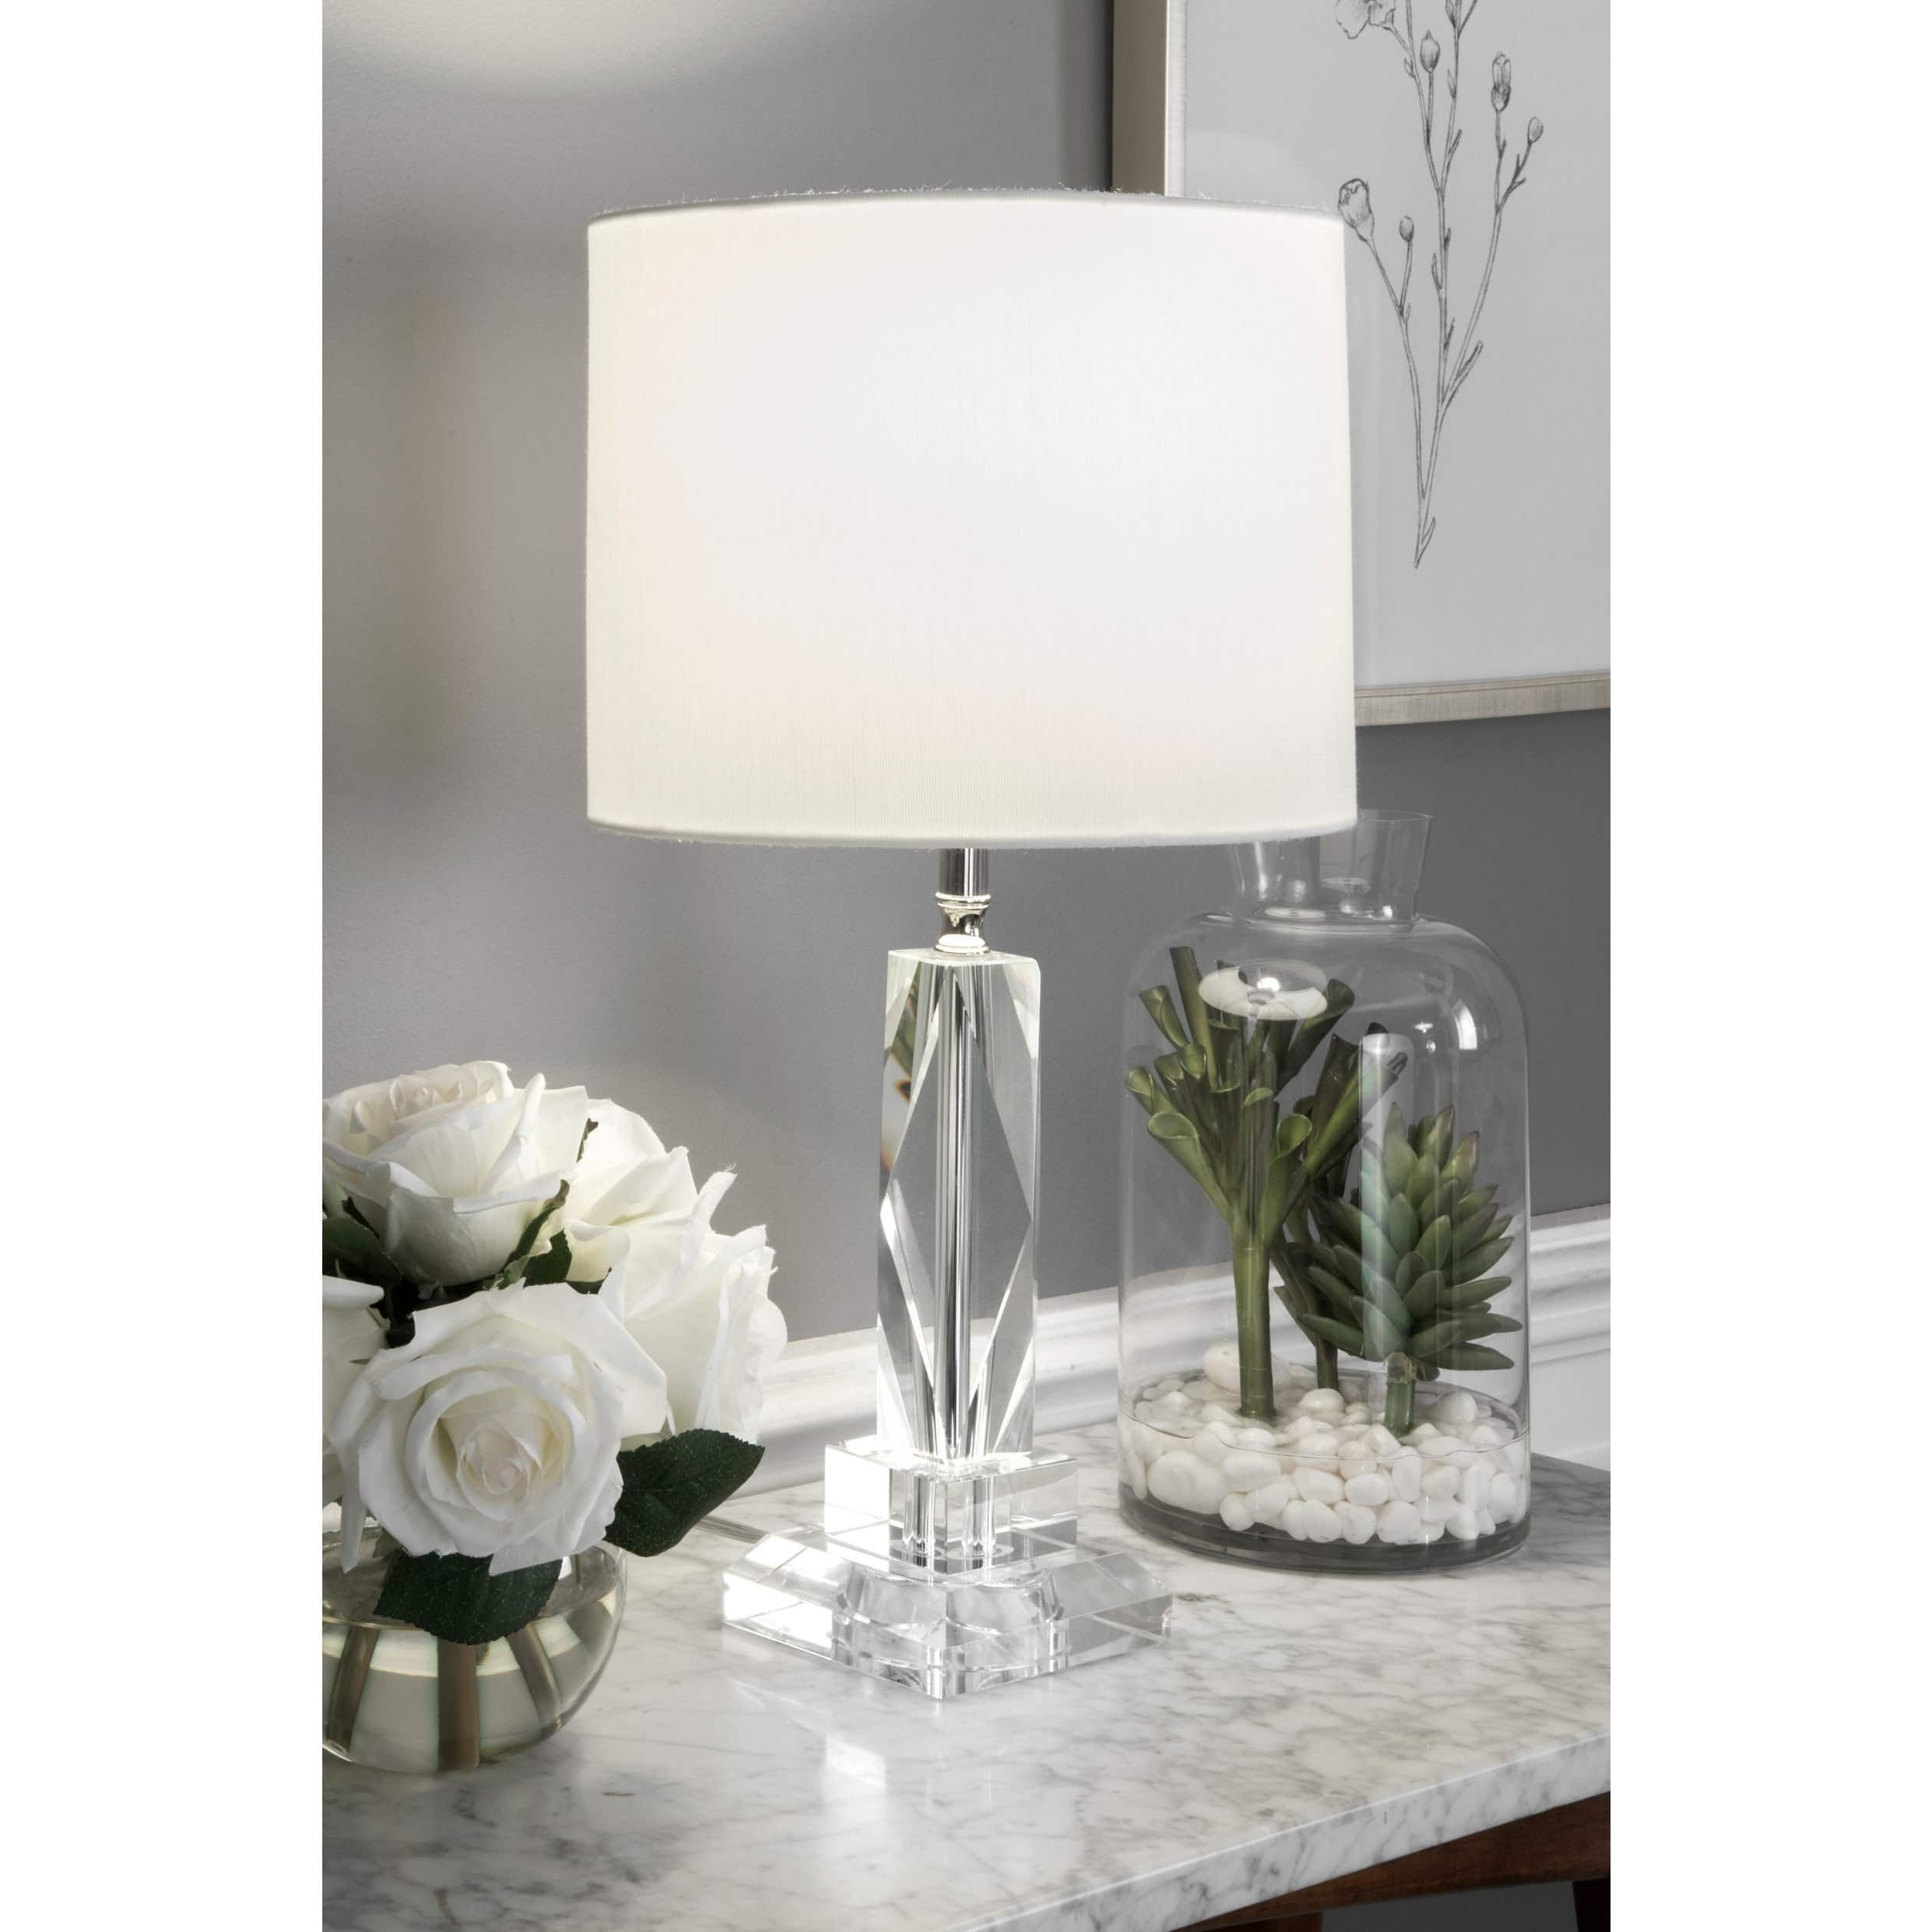 Living Room Table Reading Lamps Throughout 2018 Desk Table Reading Lamp White Light Book Bedroom Living Room Home (View 6 of 20)